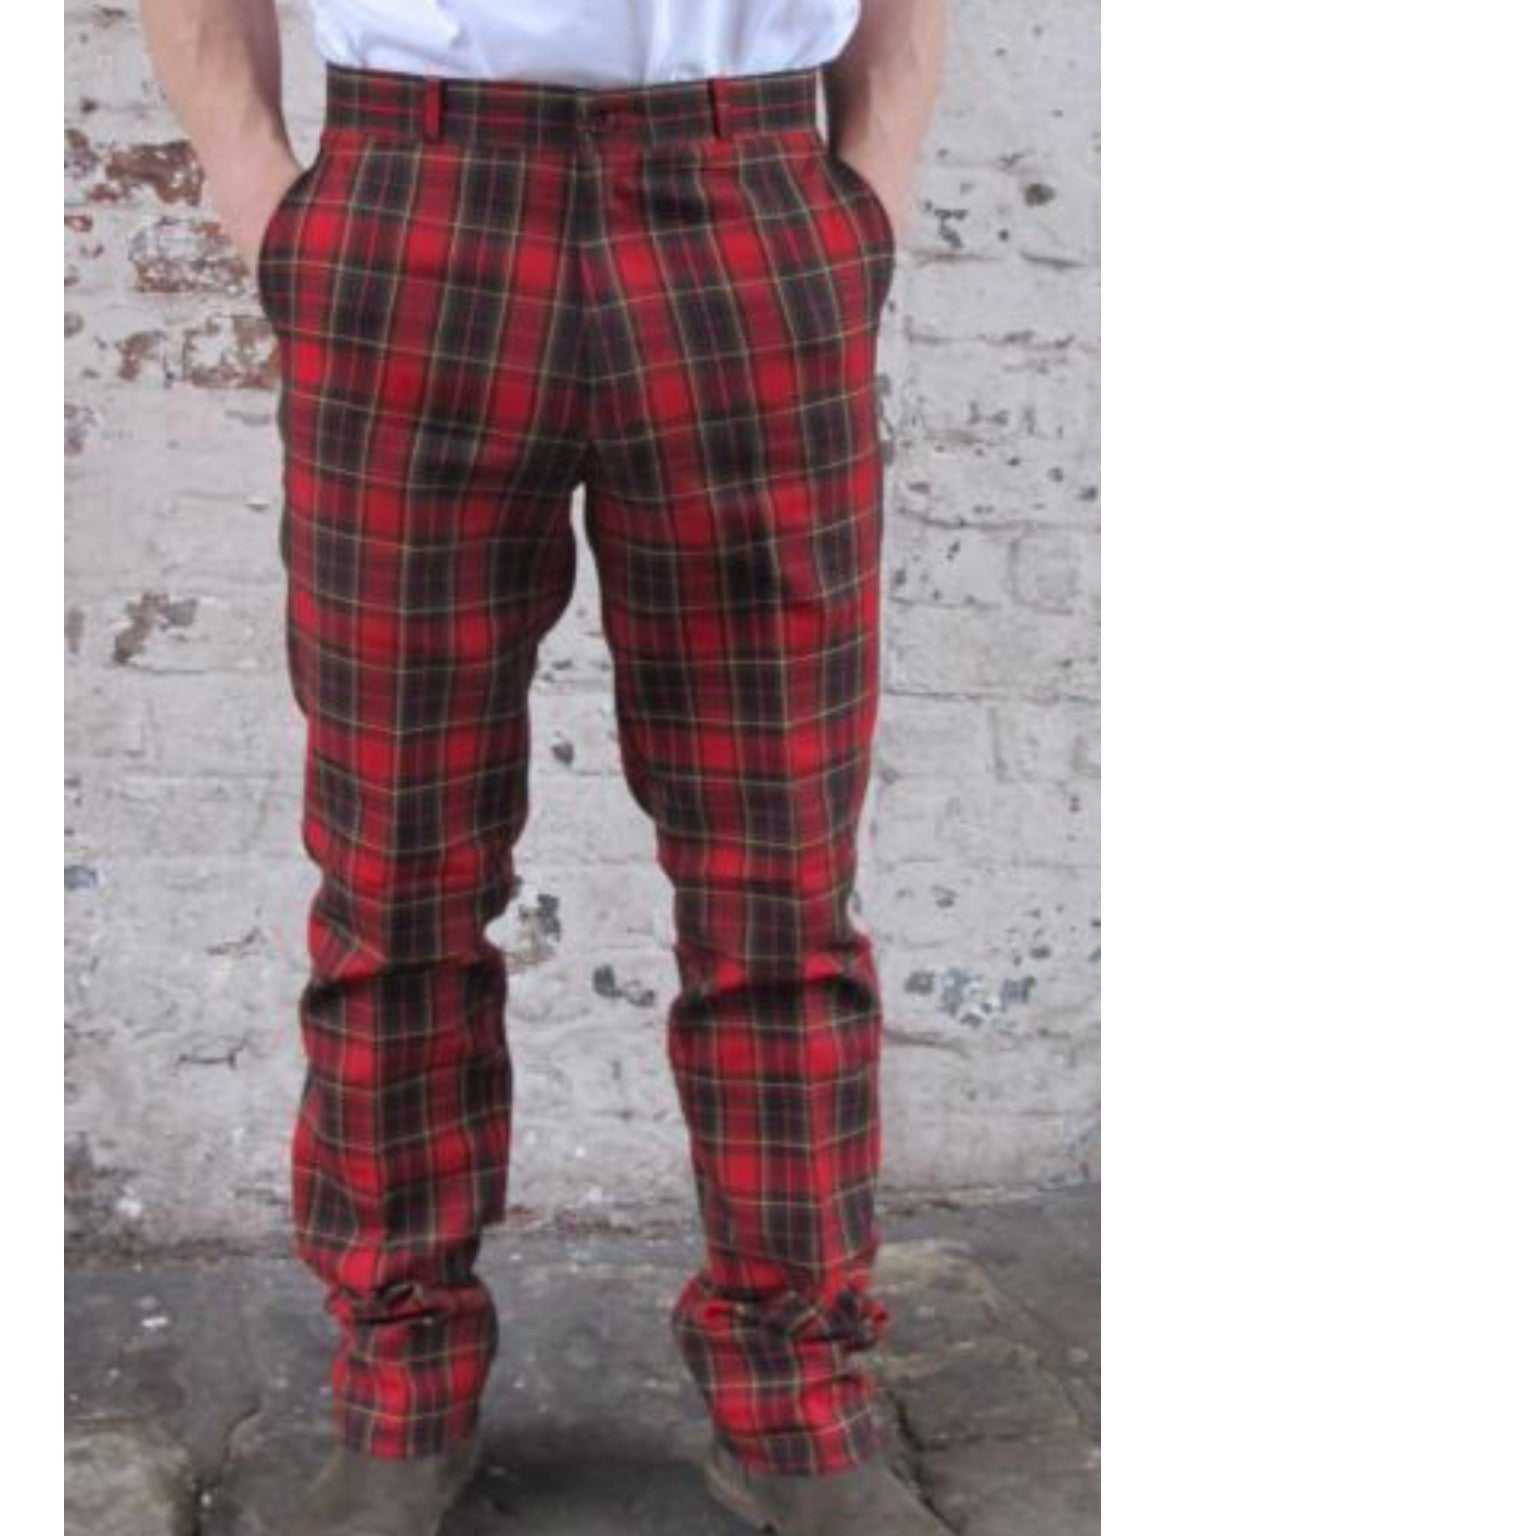 Fabulous Mens Sta Prest Trousers Red Tartan 2 - Kiss Kiss Heart EQ77